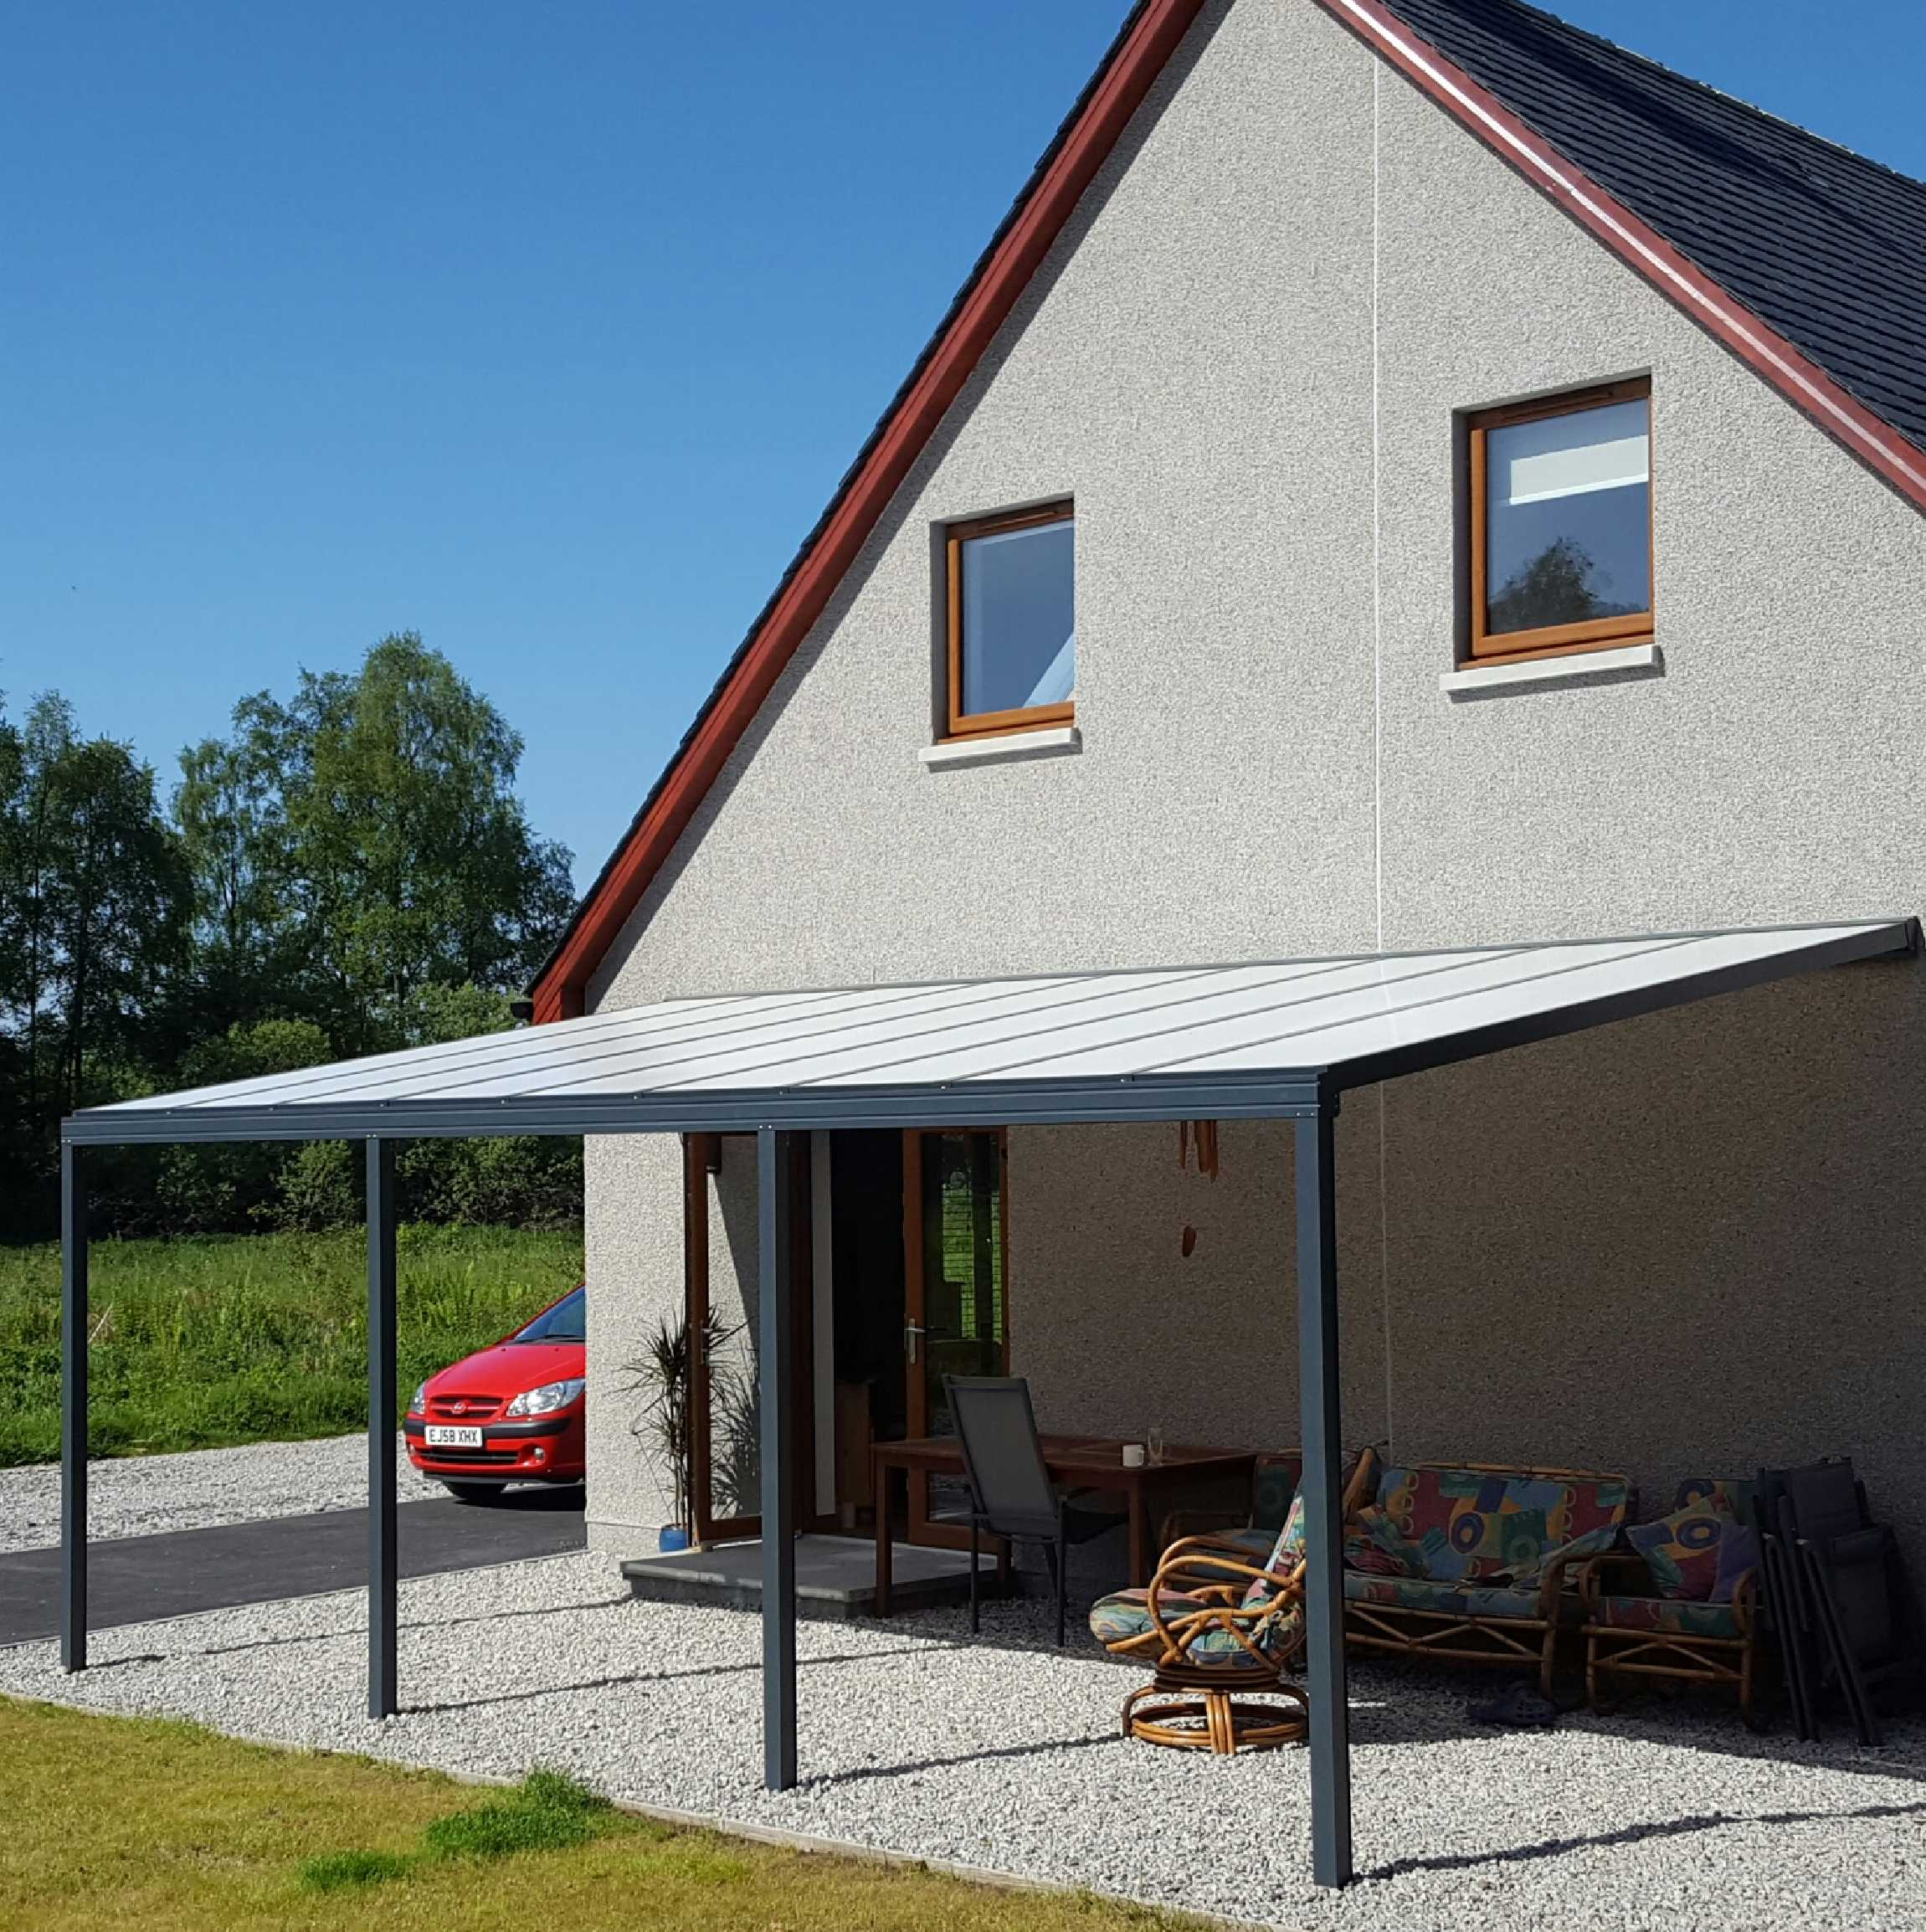 Great selection of Omega Smart Lean-To Canopy, Anthracite Grey, 16mm Polycarbonate Glazing - 11.6m (W) x 3.0m (P), (5) Supporting Posts